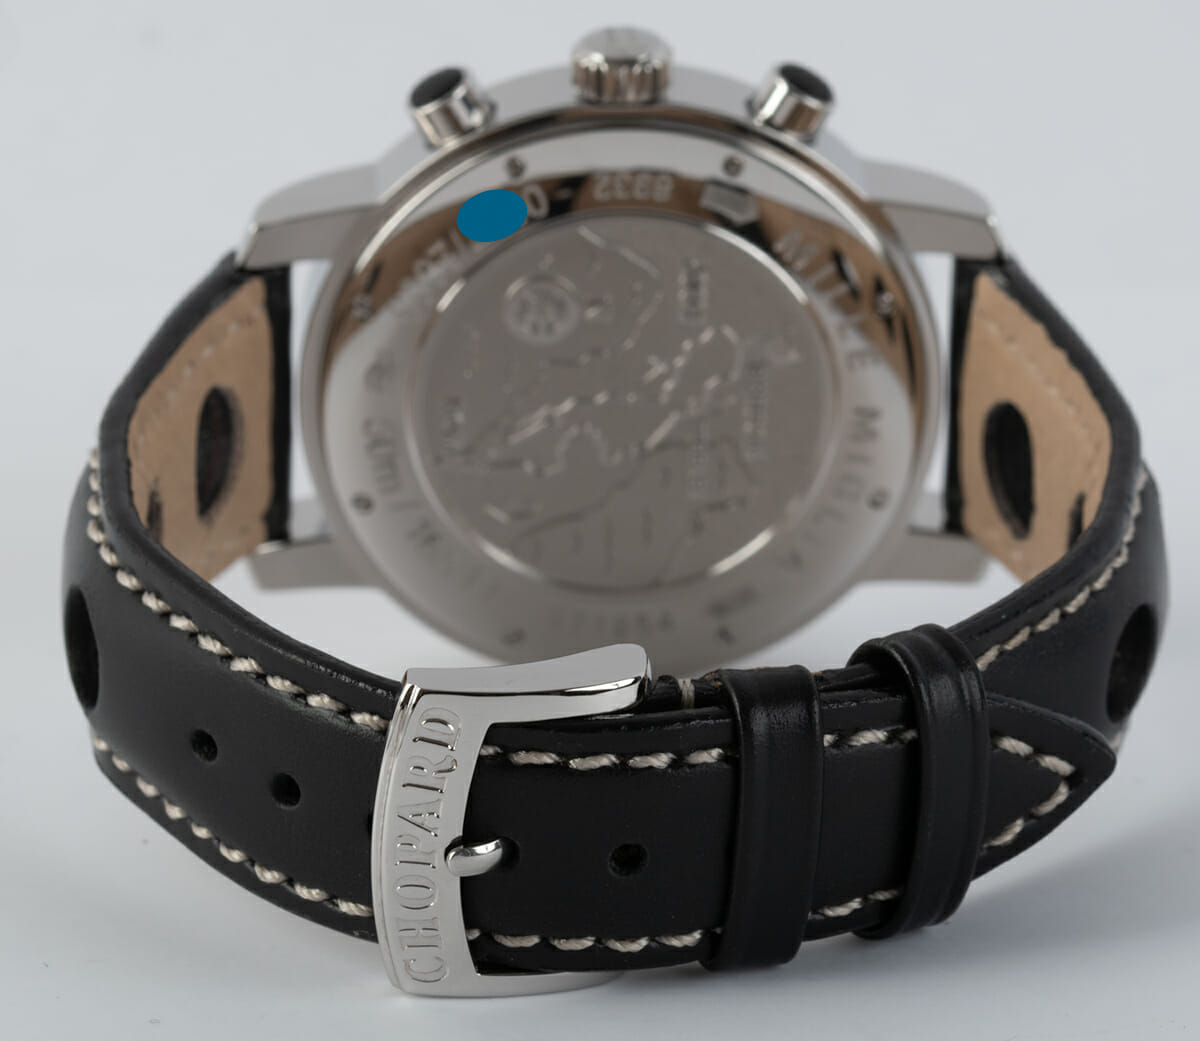 Rear / Band View of Mille Miglia Chronograph